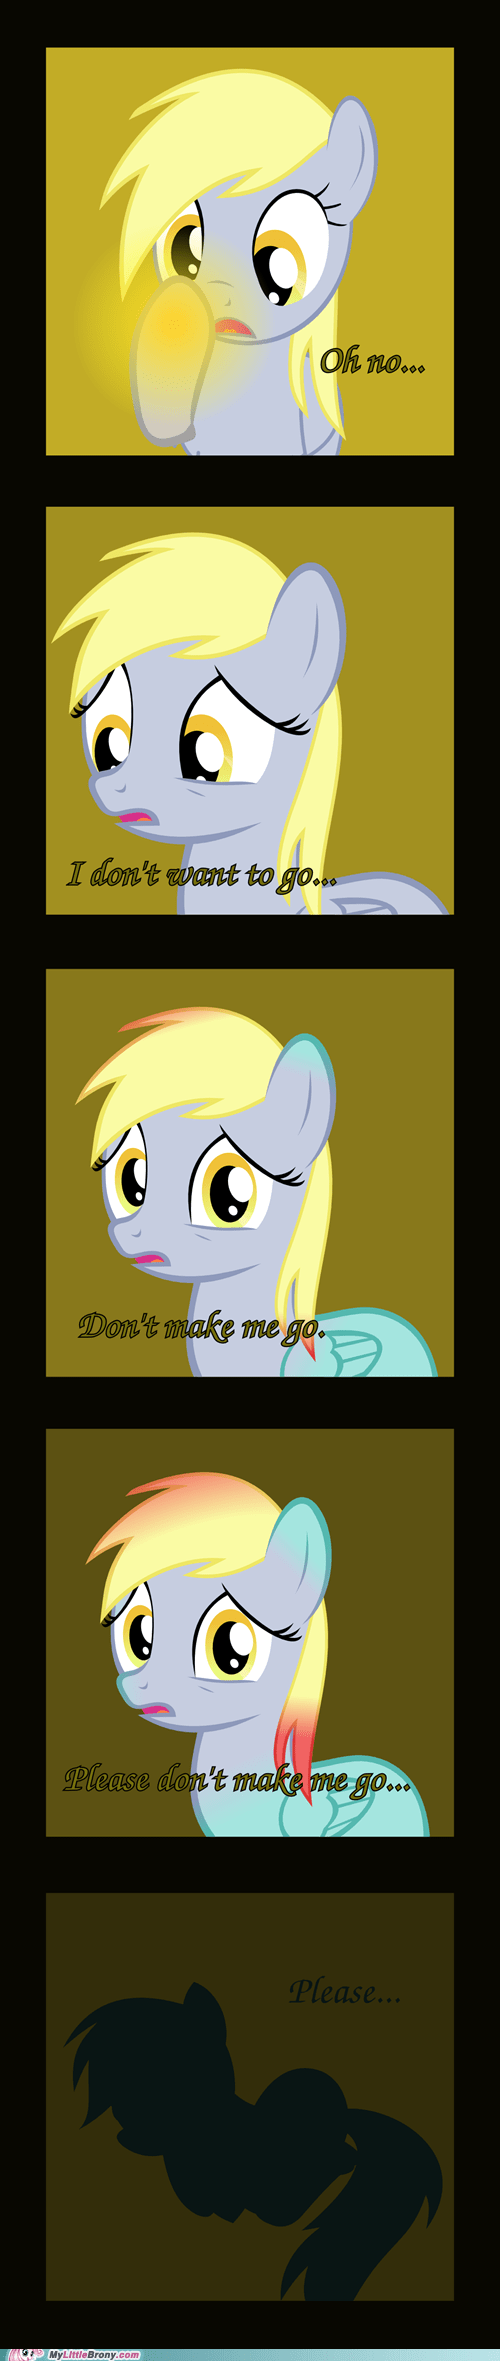 comics derpy hooves oh no petition save derpy - 5781234176